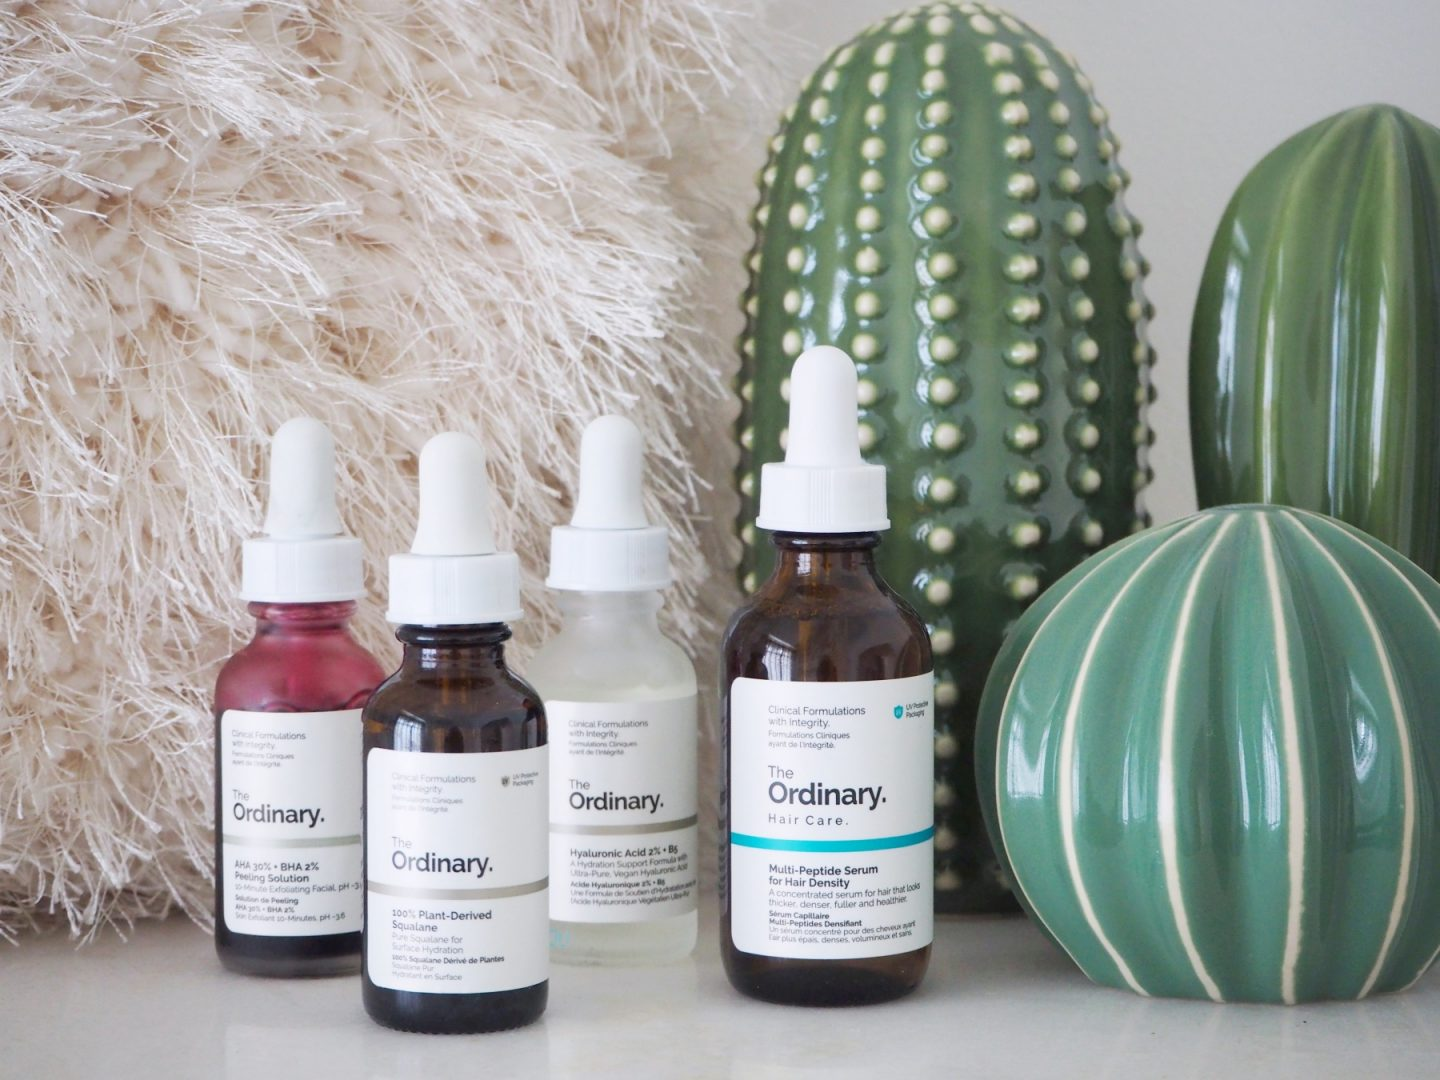 The Ordinary; The Affordable Products That Transformed My Skin - Peeling solution, 100% plant derived squalene, hylauronic acid & multi-peptide serum